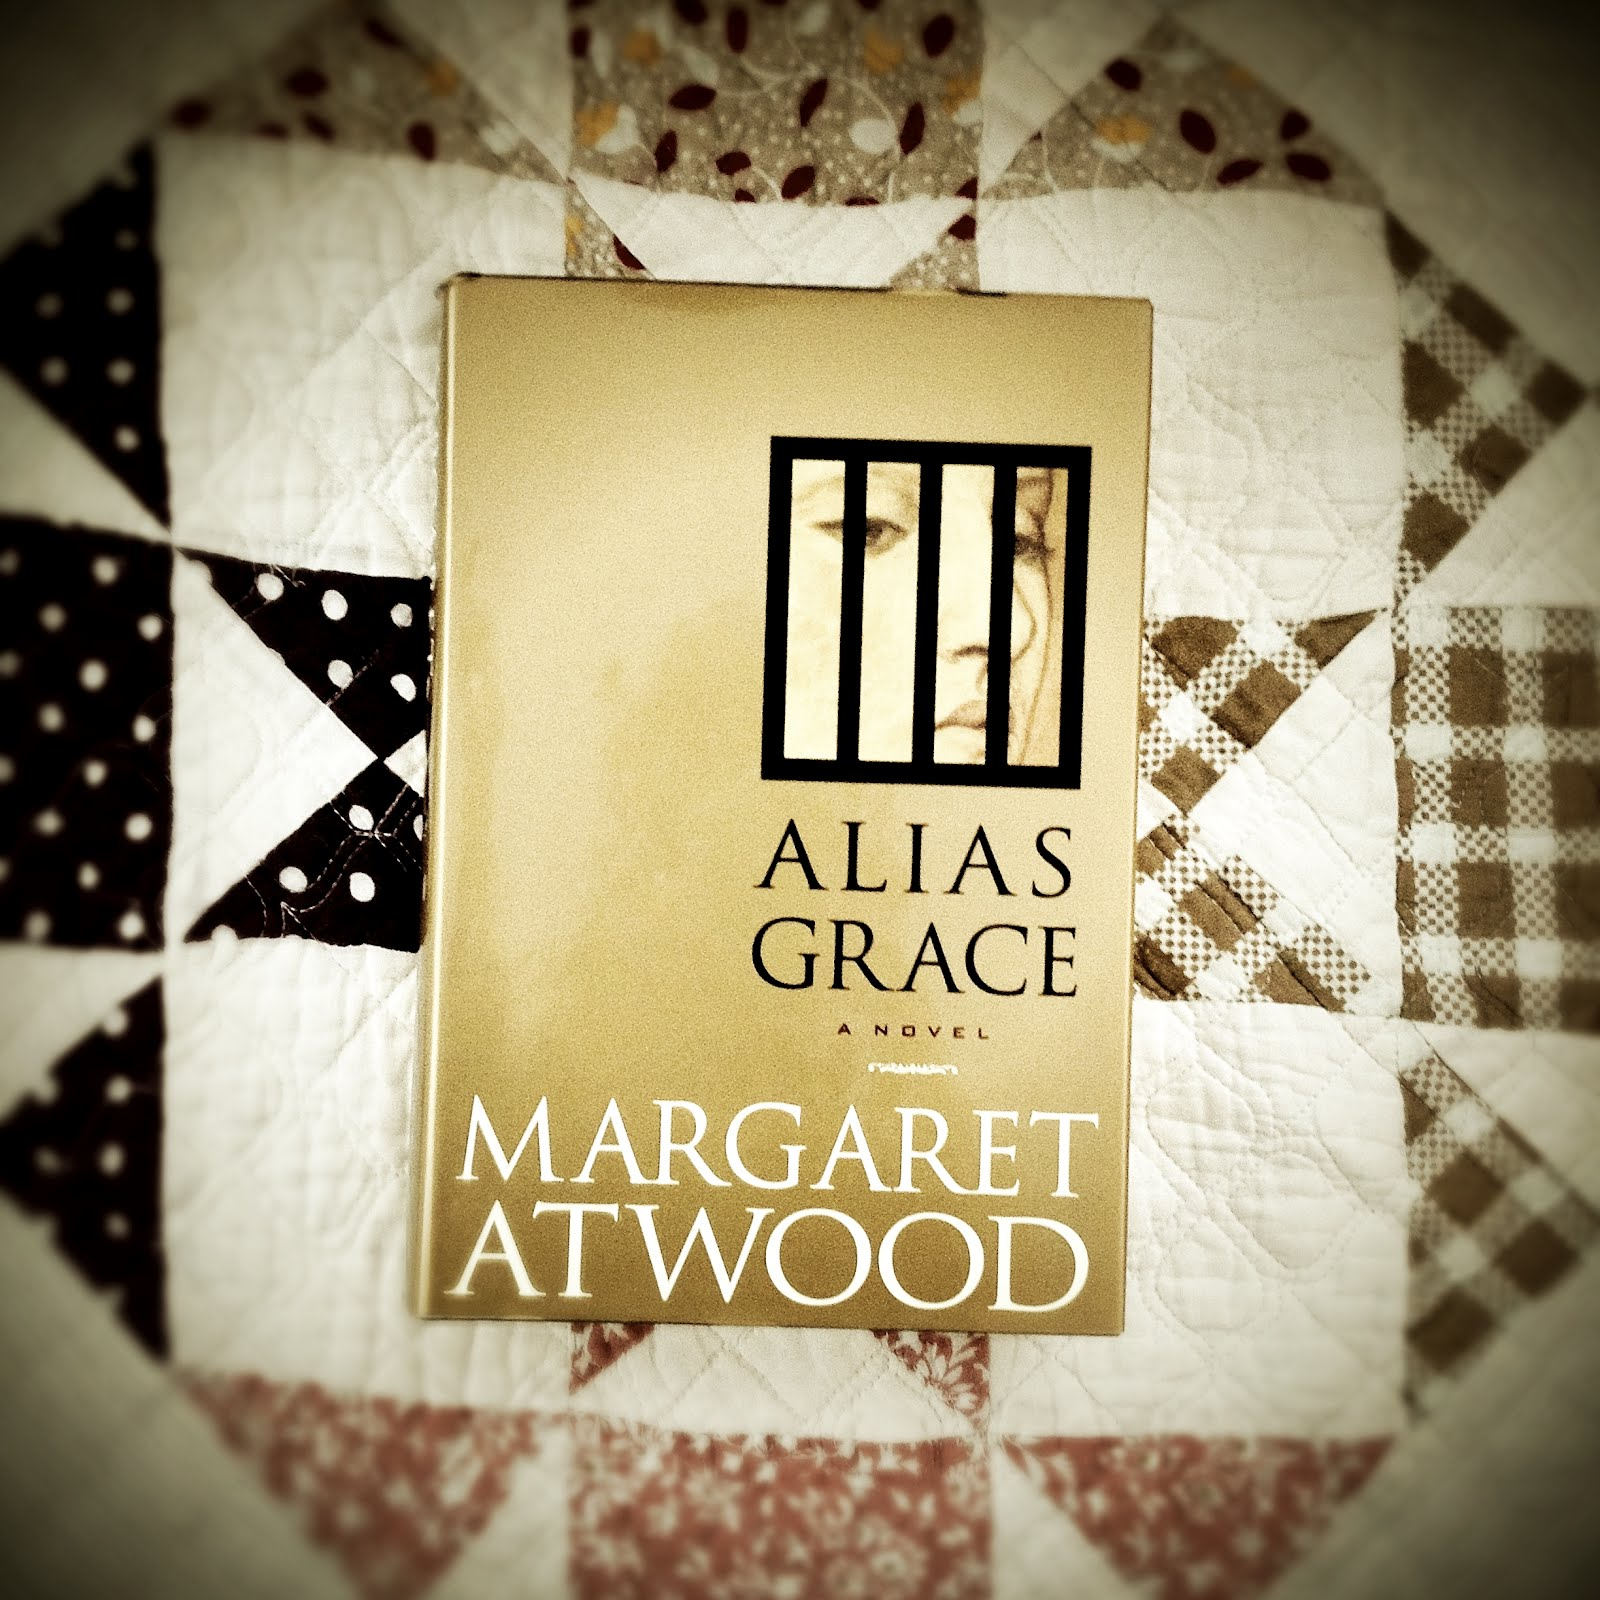 character analysis alias grace margaret atwood